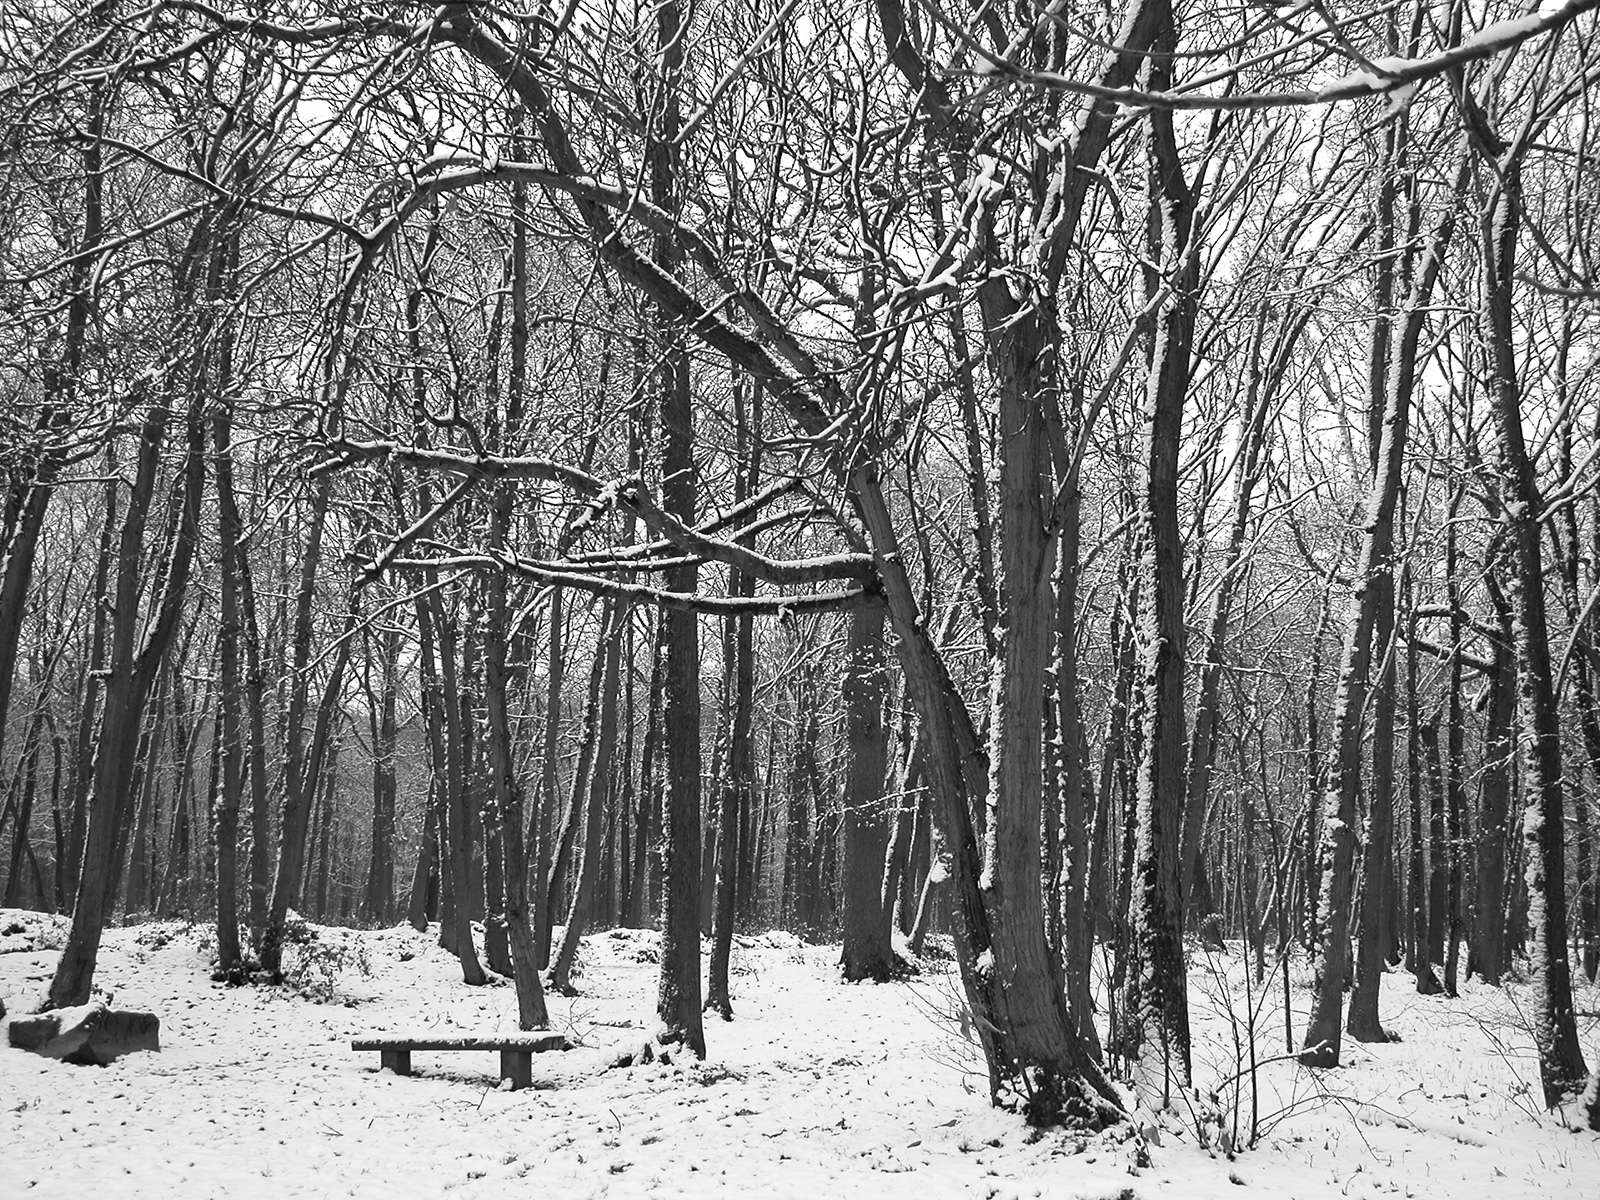 a snow covered forest near Paris, France